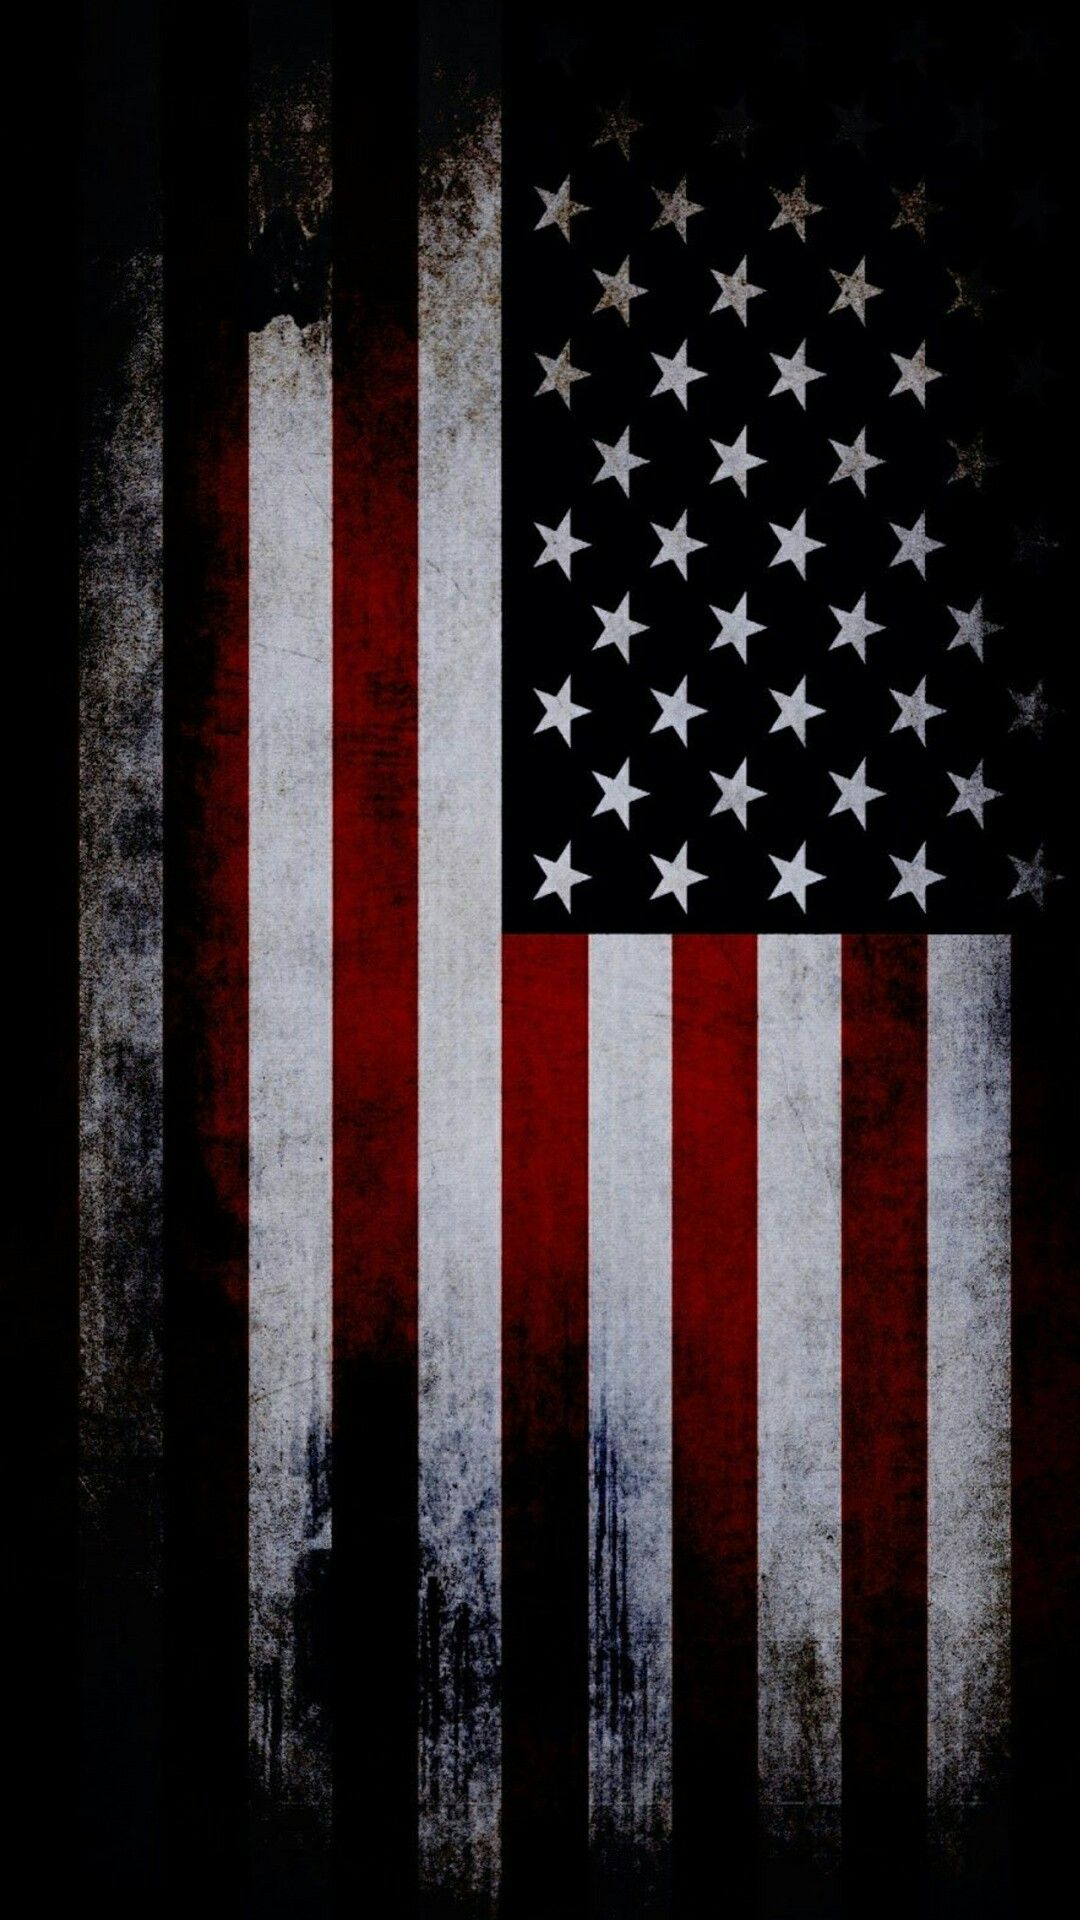 America American Flag Wallpaper Iphone, Patriotic Wallpaper, Army Wallpaper, Iphone Wallpaper, Iphone